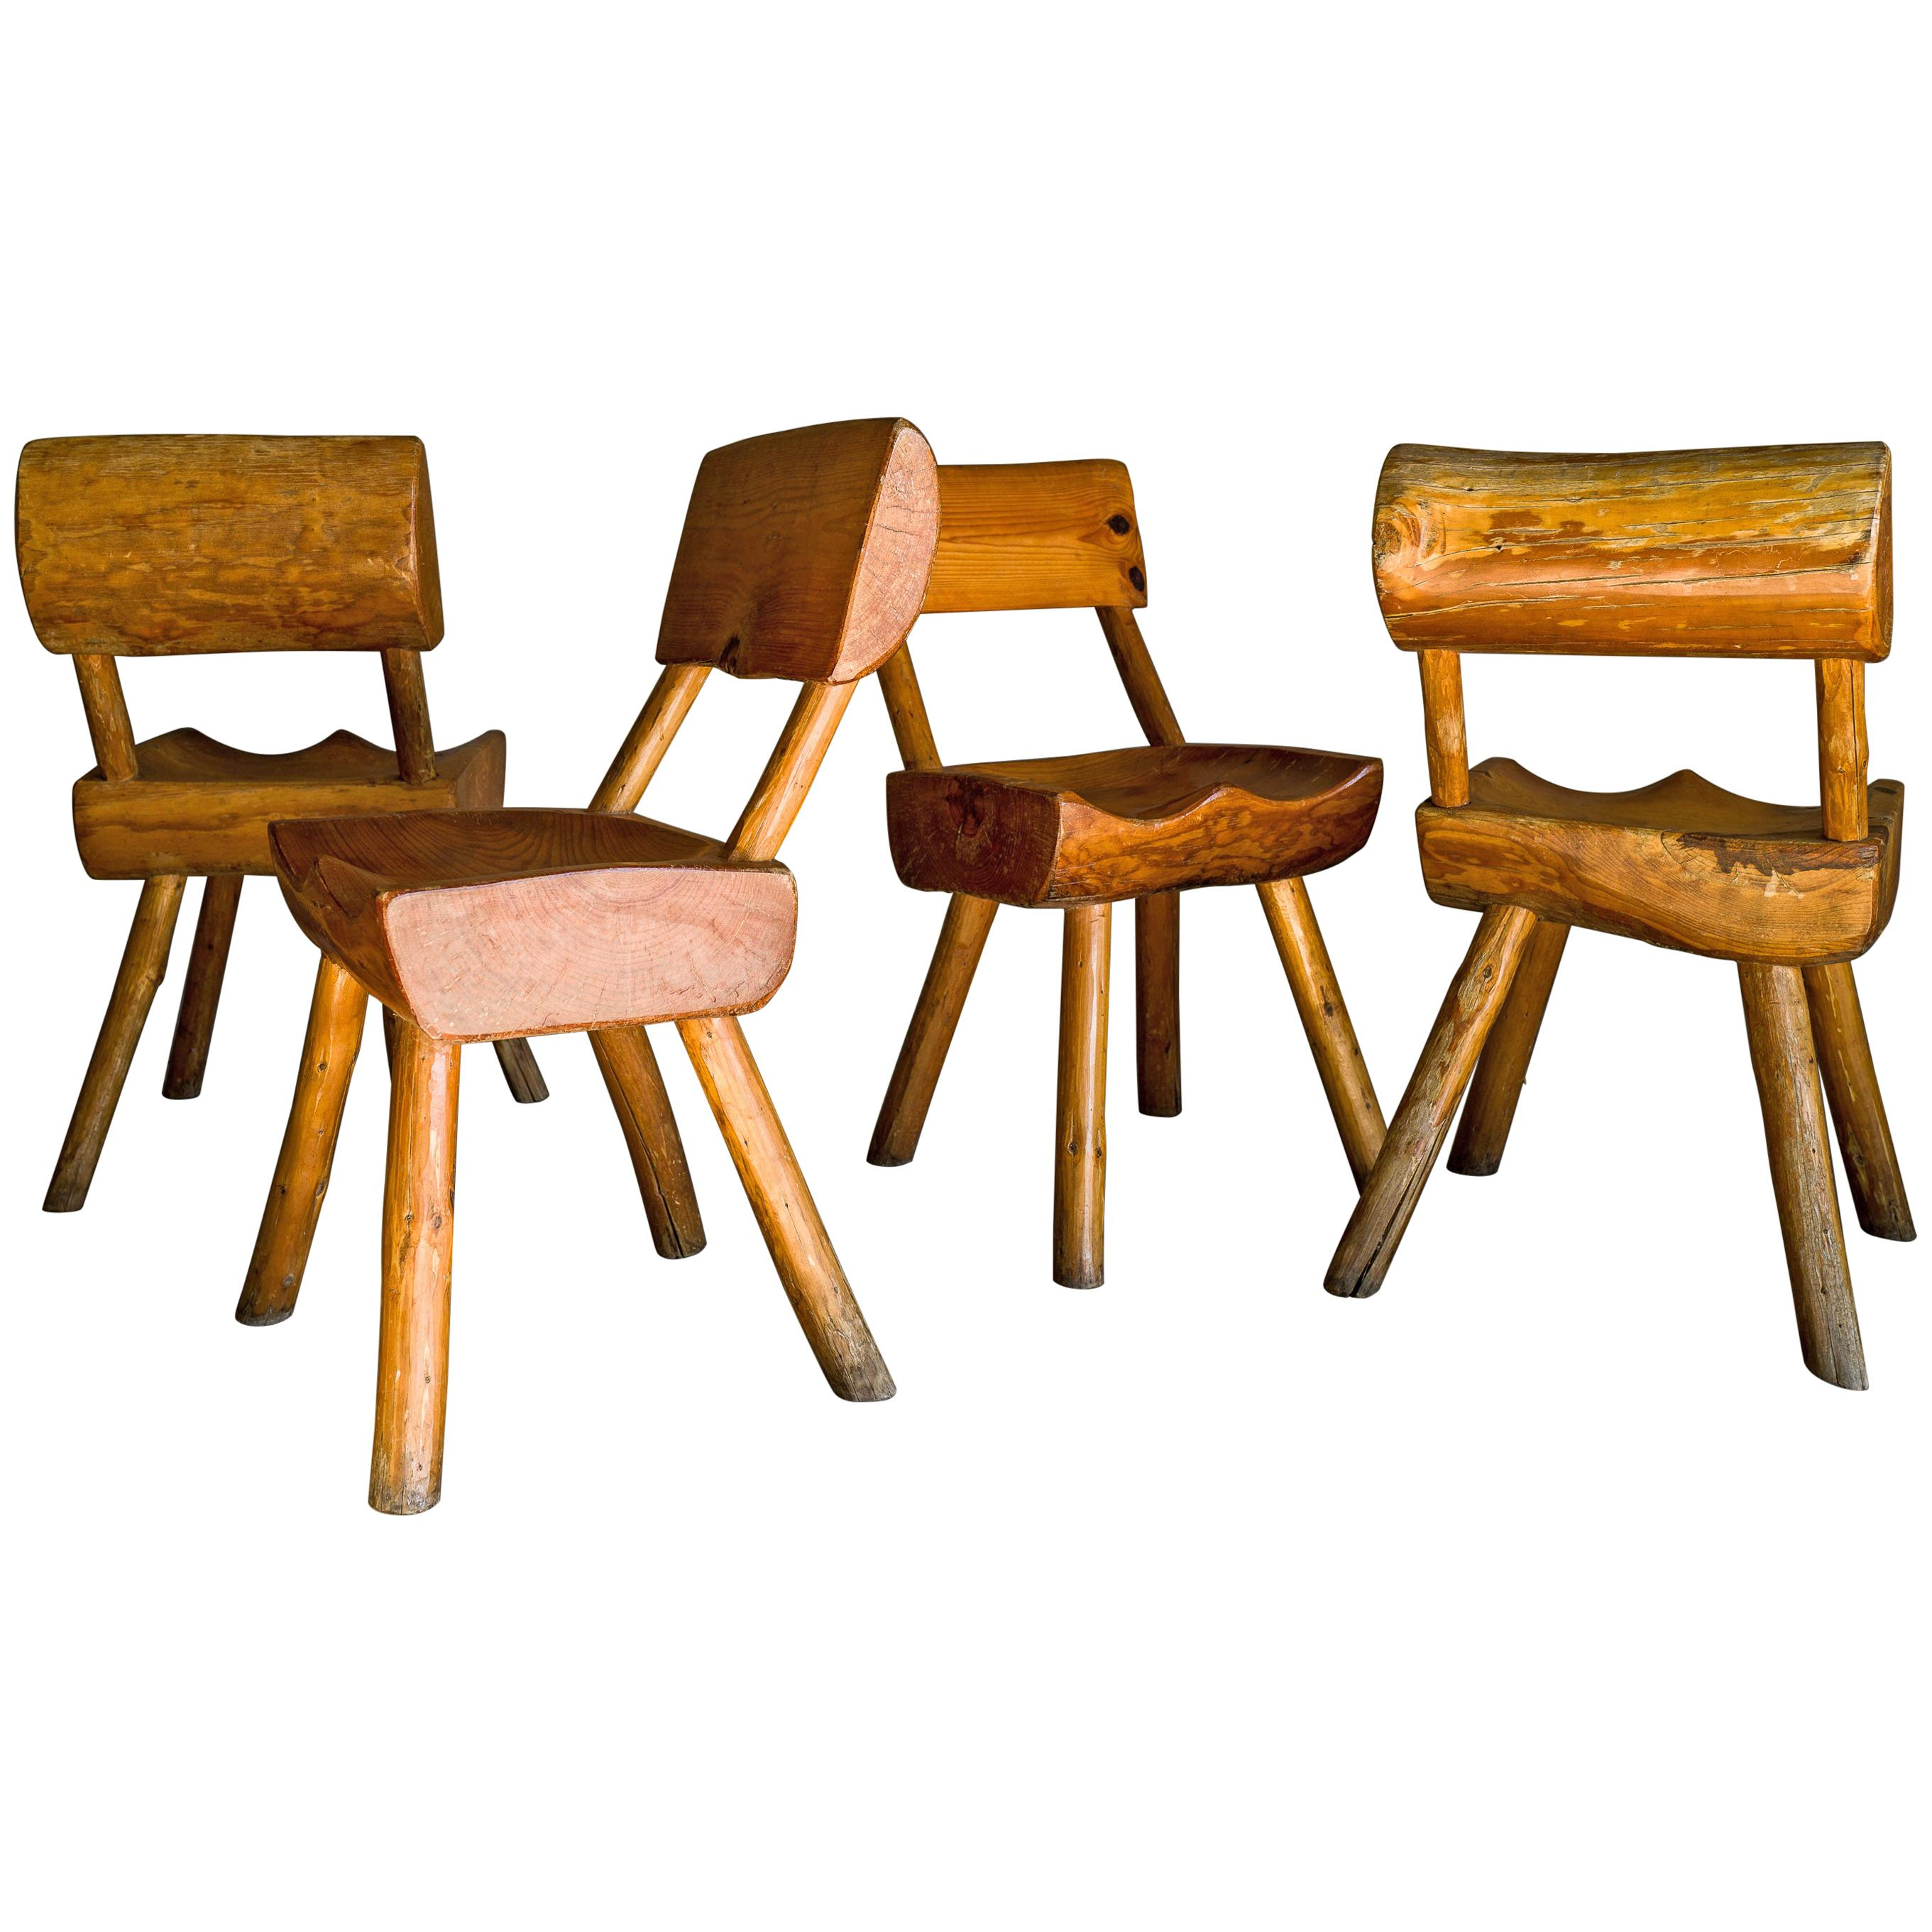 Rare Set of Four Carved Pine Chairs, circa 1960